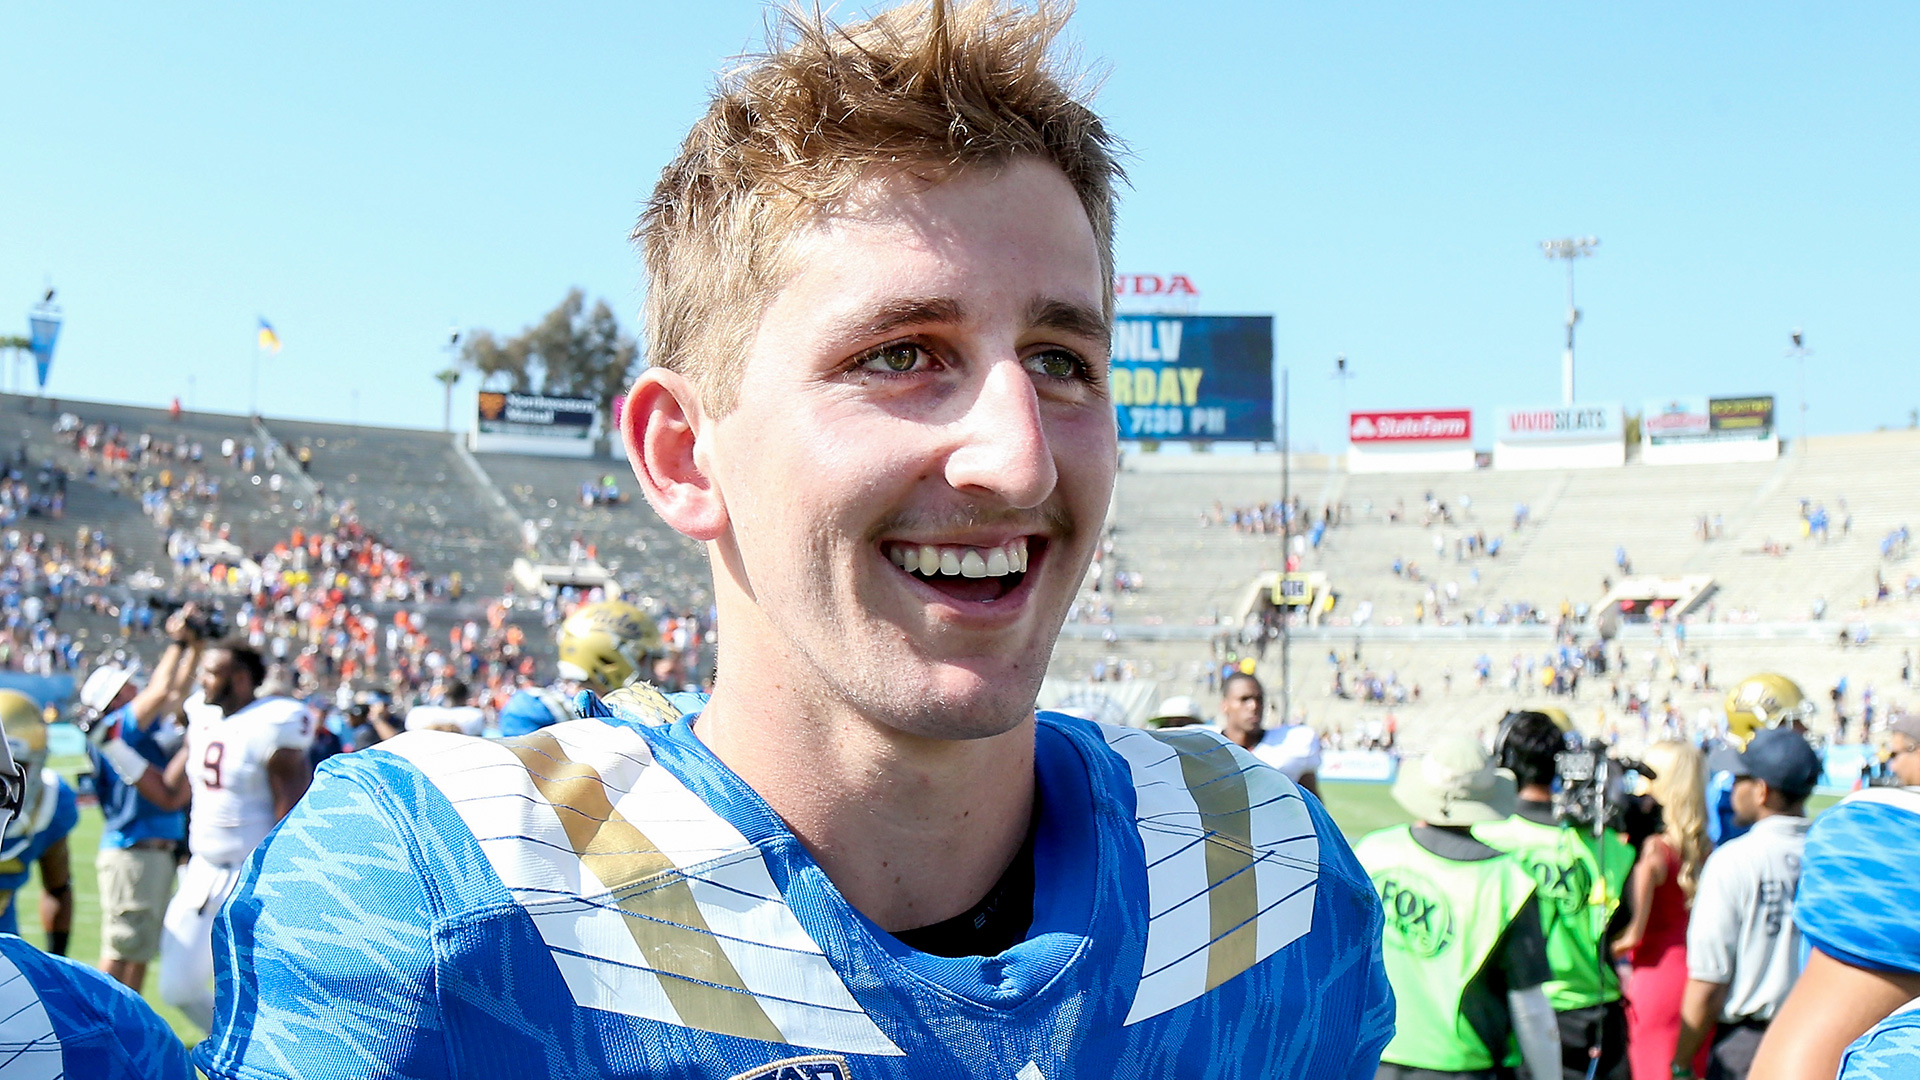 UCLA QB Josh Rosen on being a student athlete